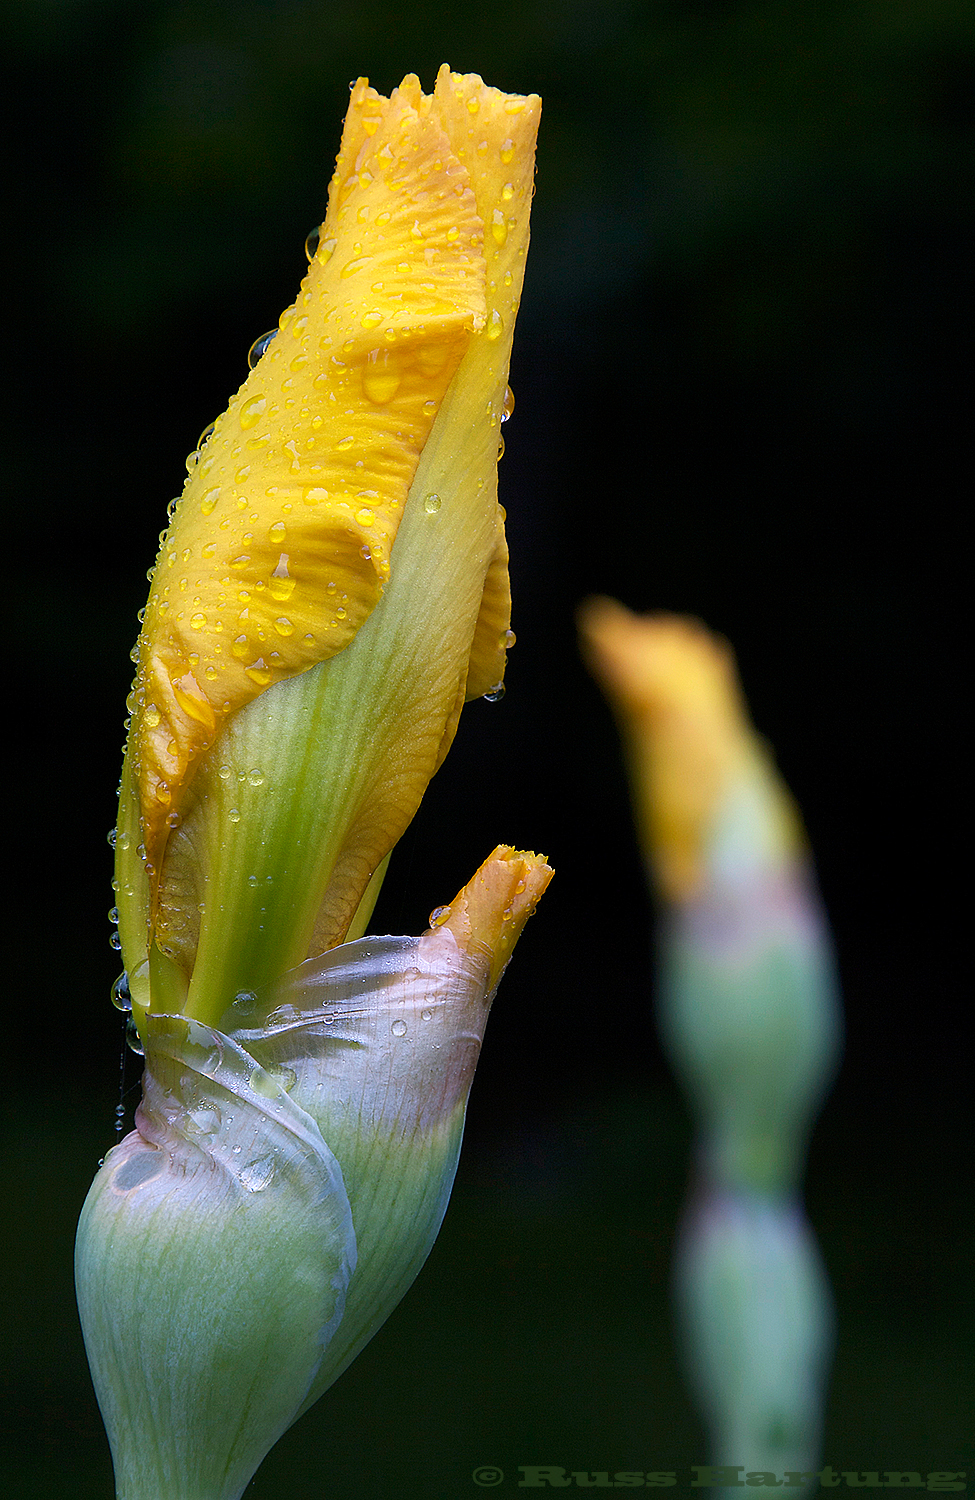 A pair of blossoming yellow irises.